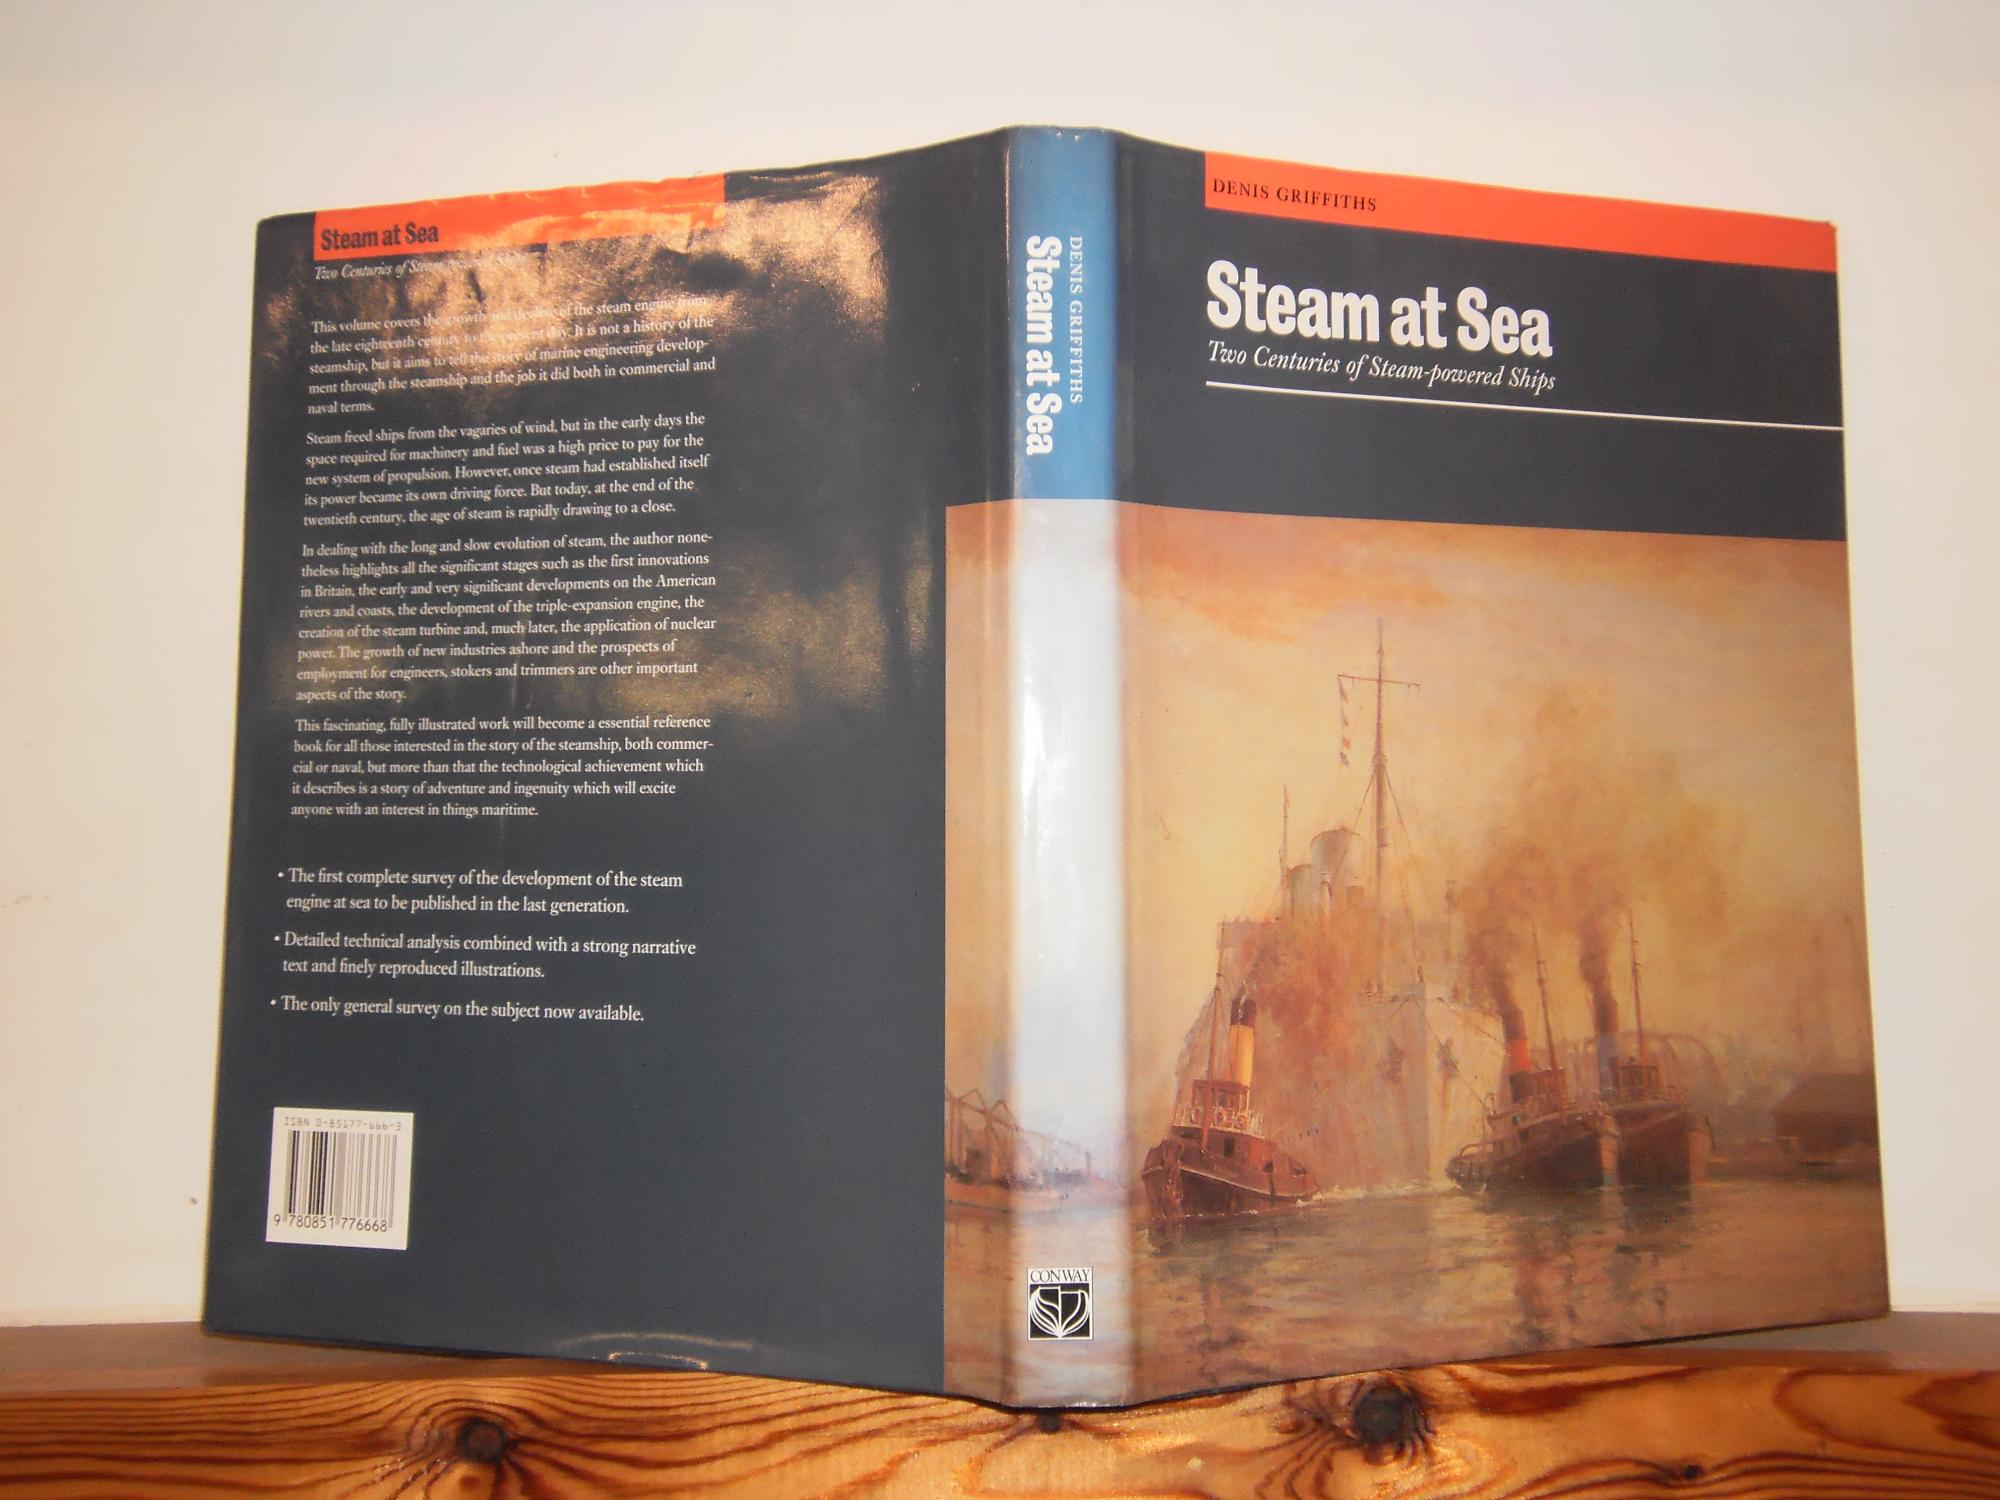 Steam at sea two centuries of steam powered ships by griffiths steam at sea two centuries of steam powered ships by griffiths denis conway maritime press london 9780851776668 hard cover first edition ccuart Images